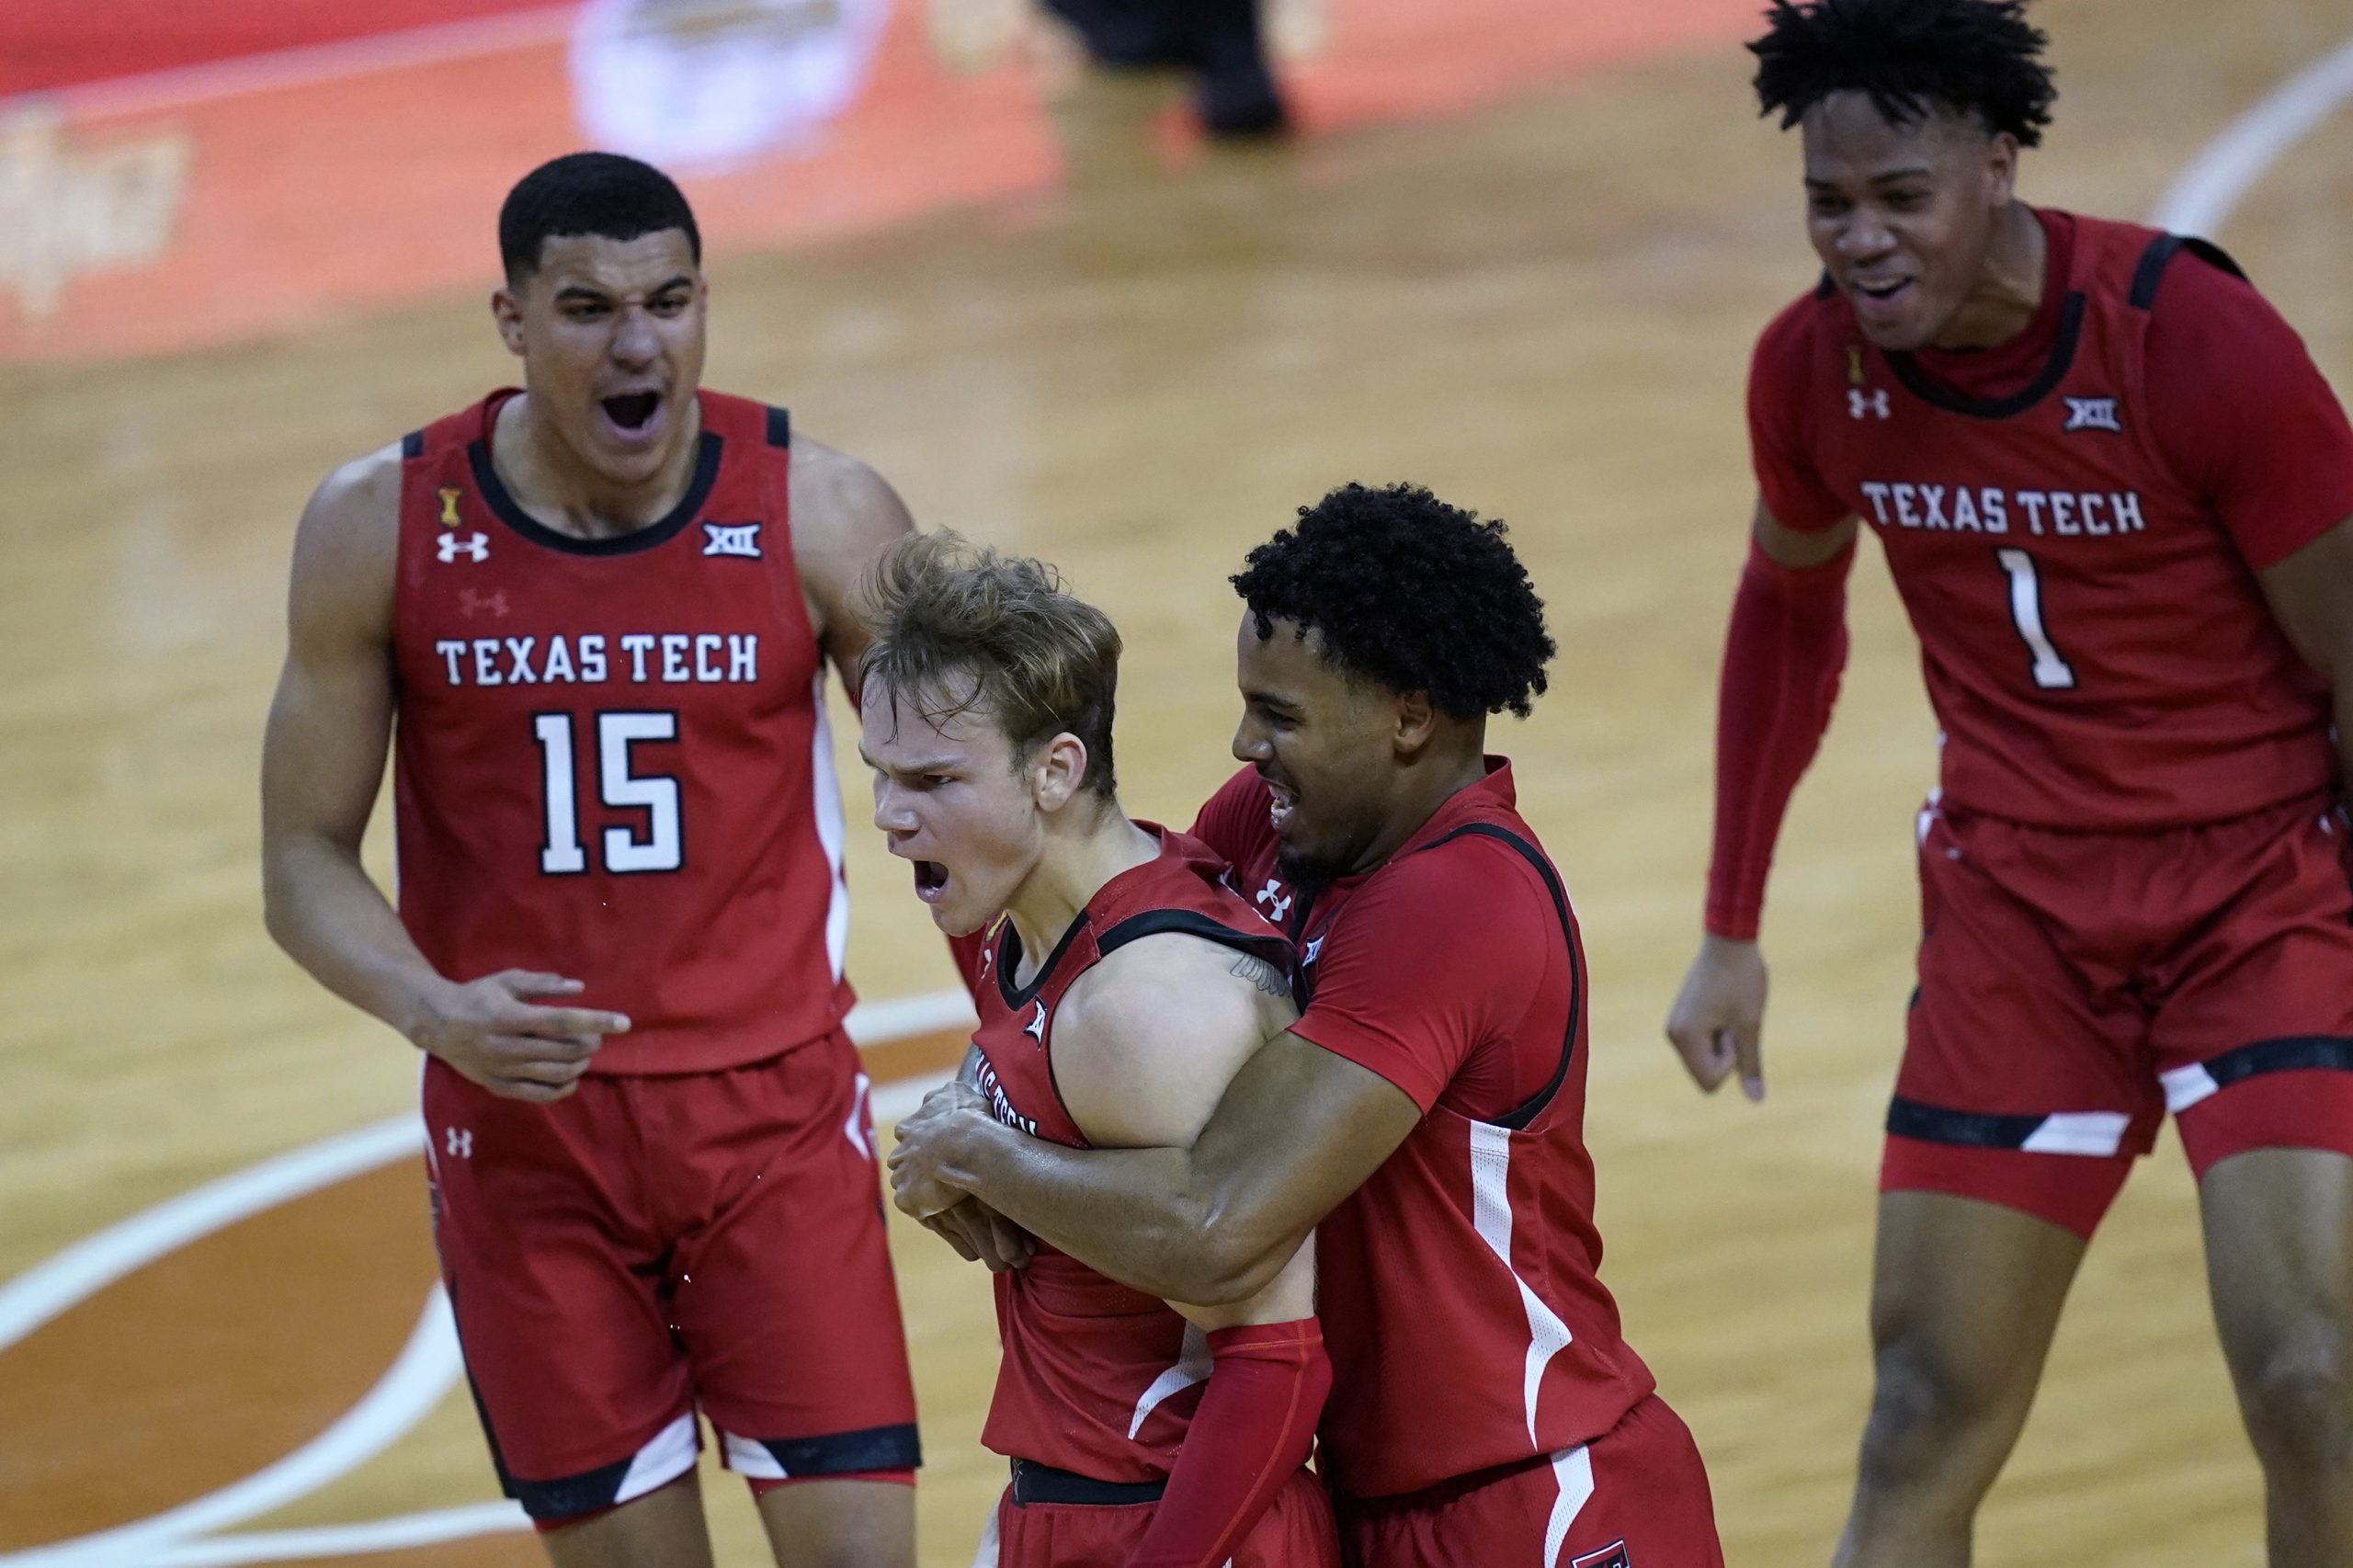 No. 15 Texas Tech knocks off No. 4 Texas, 79-77 6